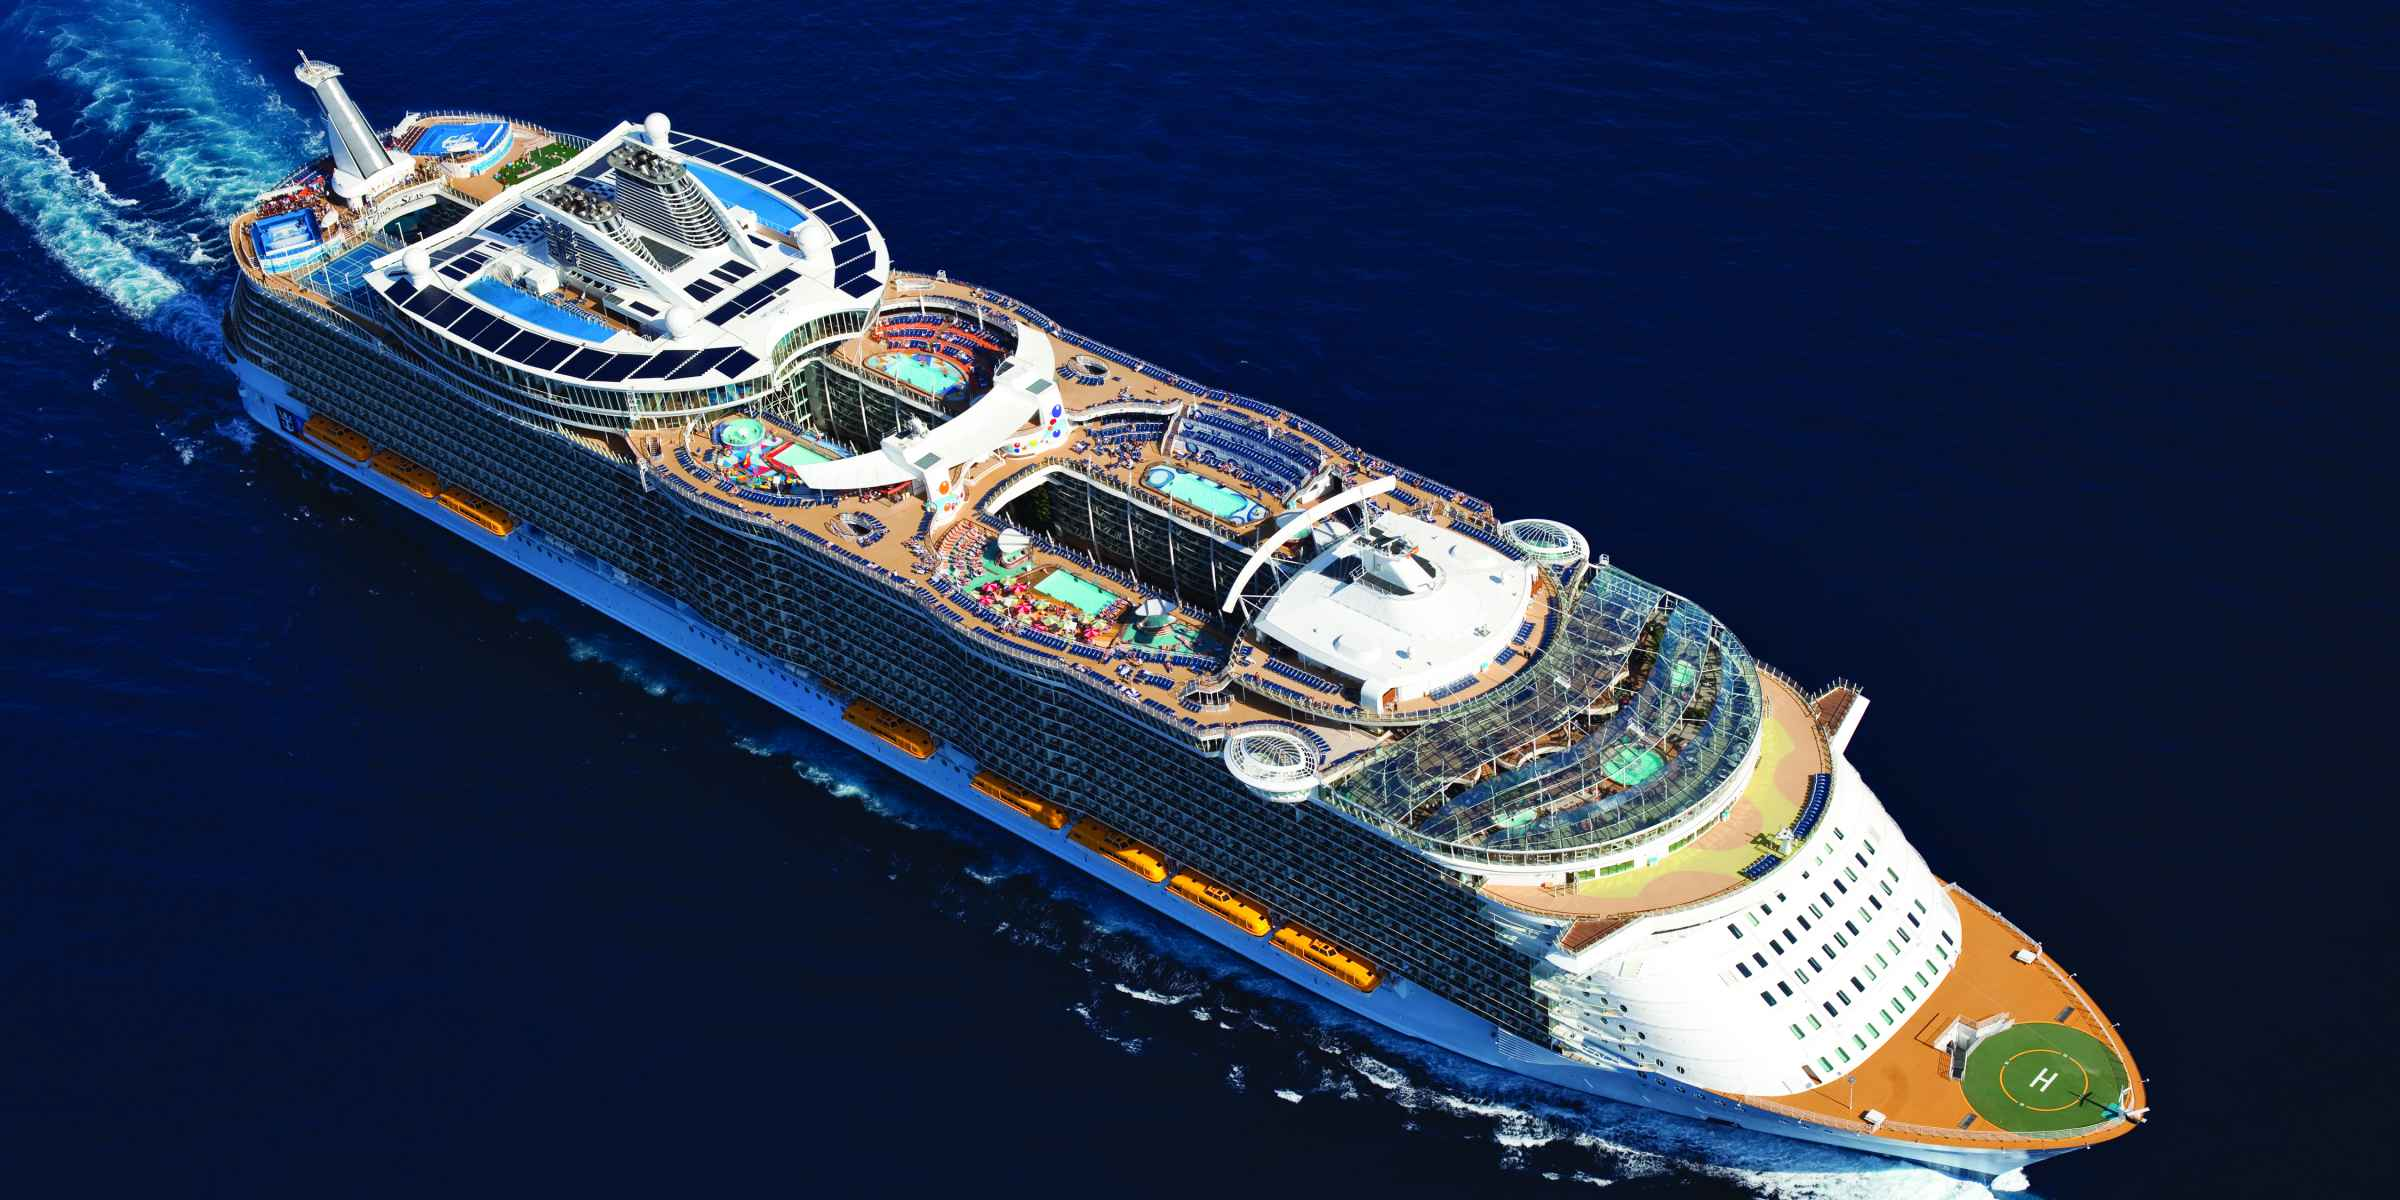 Royal Caribbean Cruises | Cruise Deals on Oasis of the Seas